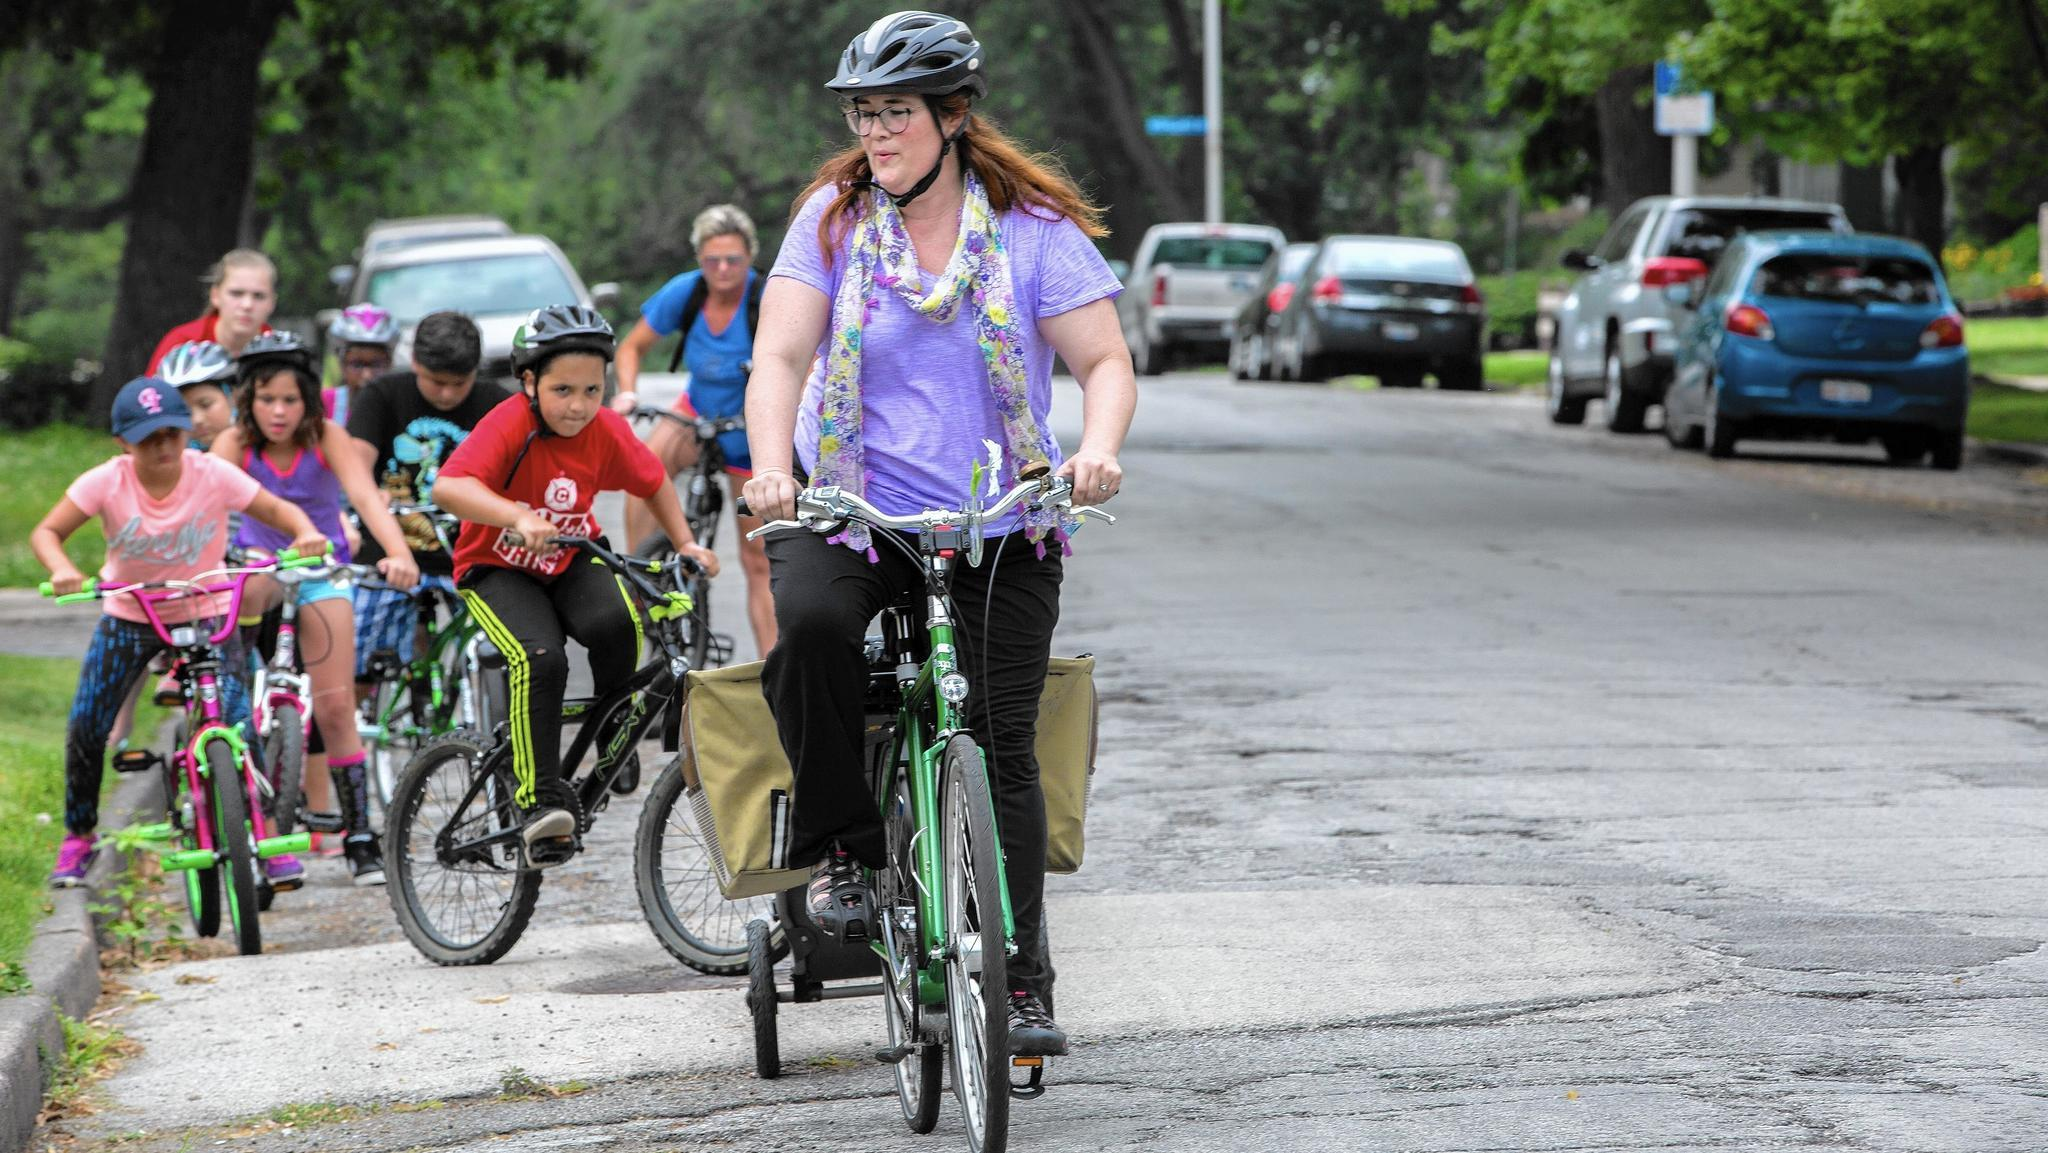 Cyclists face barriers in car-centric Chicago suburbs  study - Chicago  Tribune 53325c92d